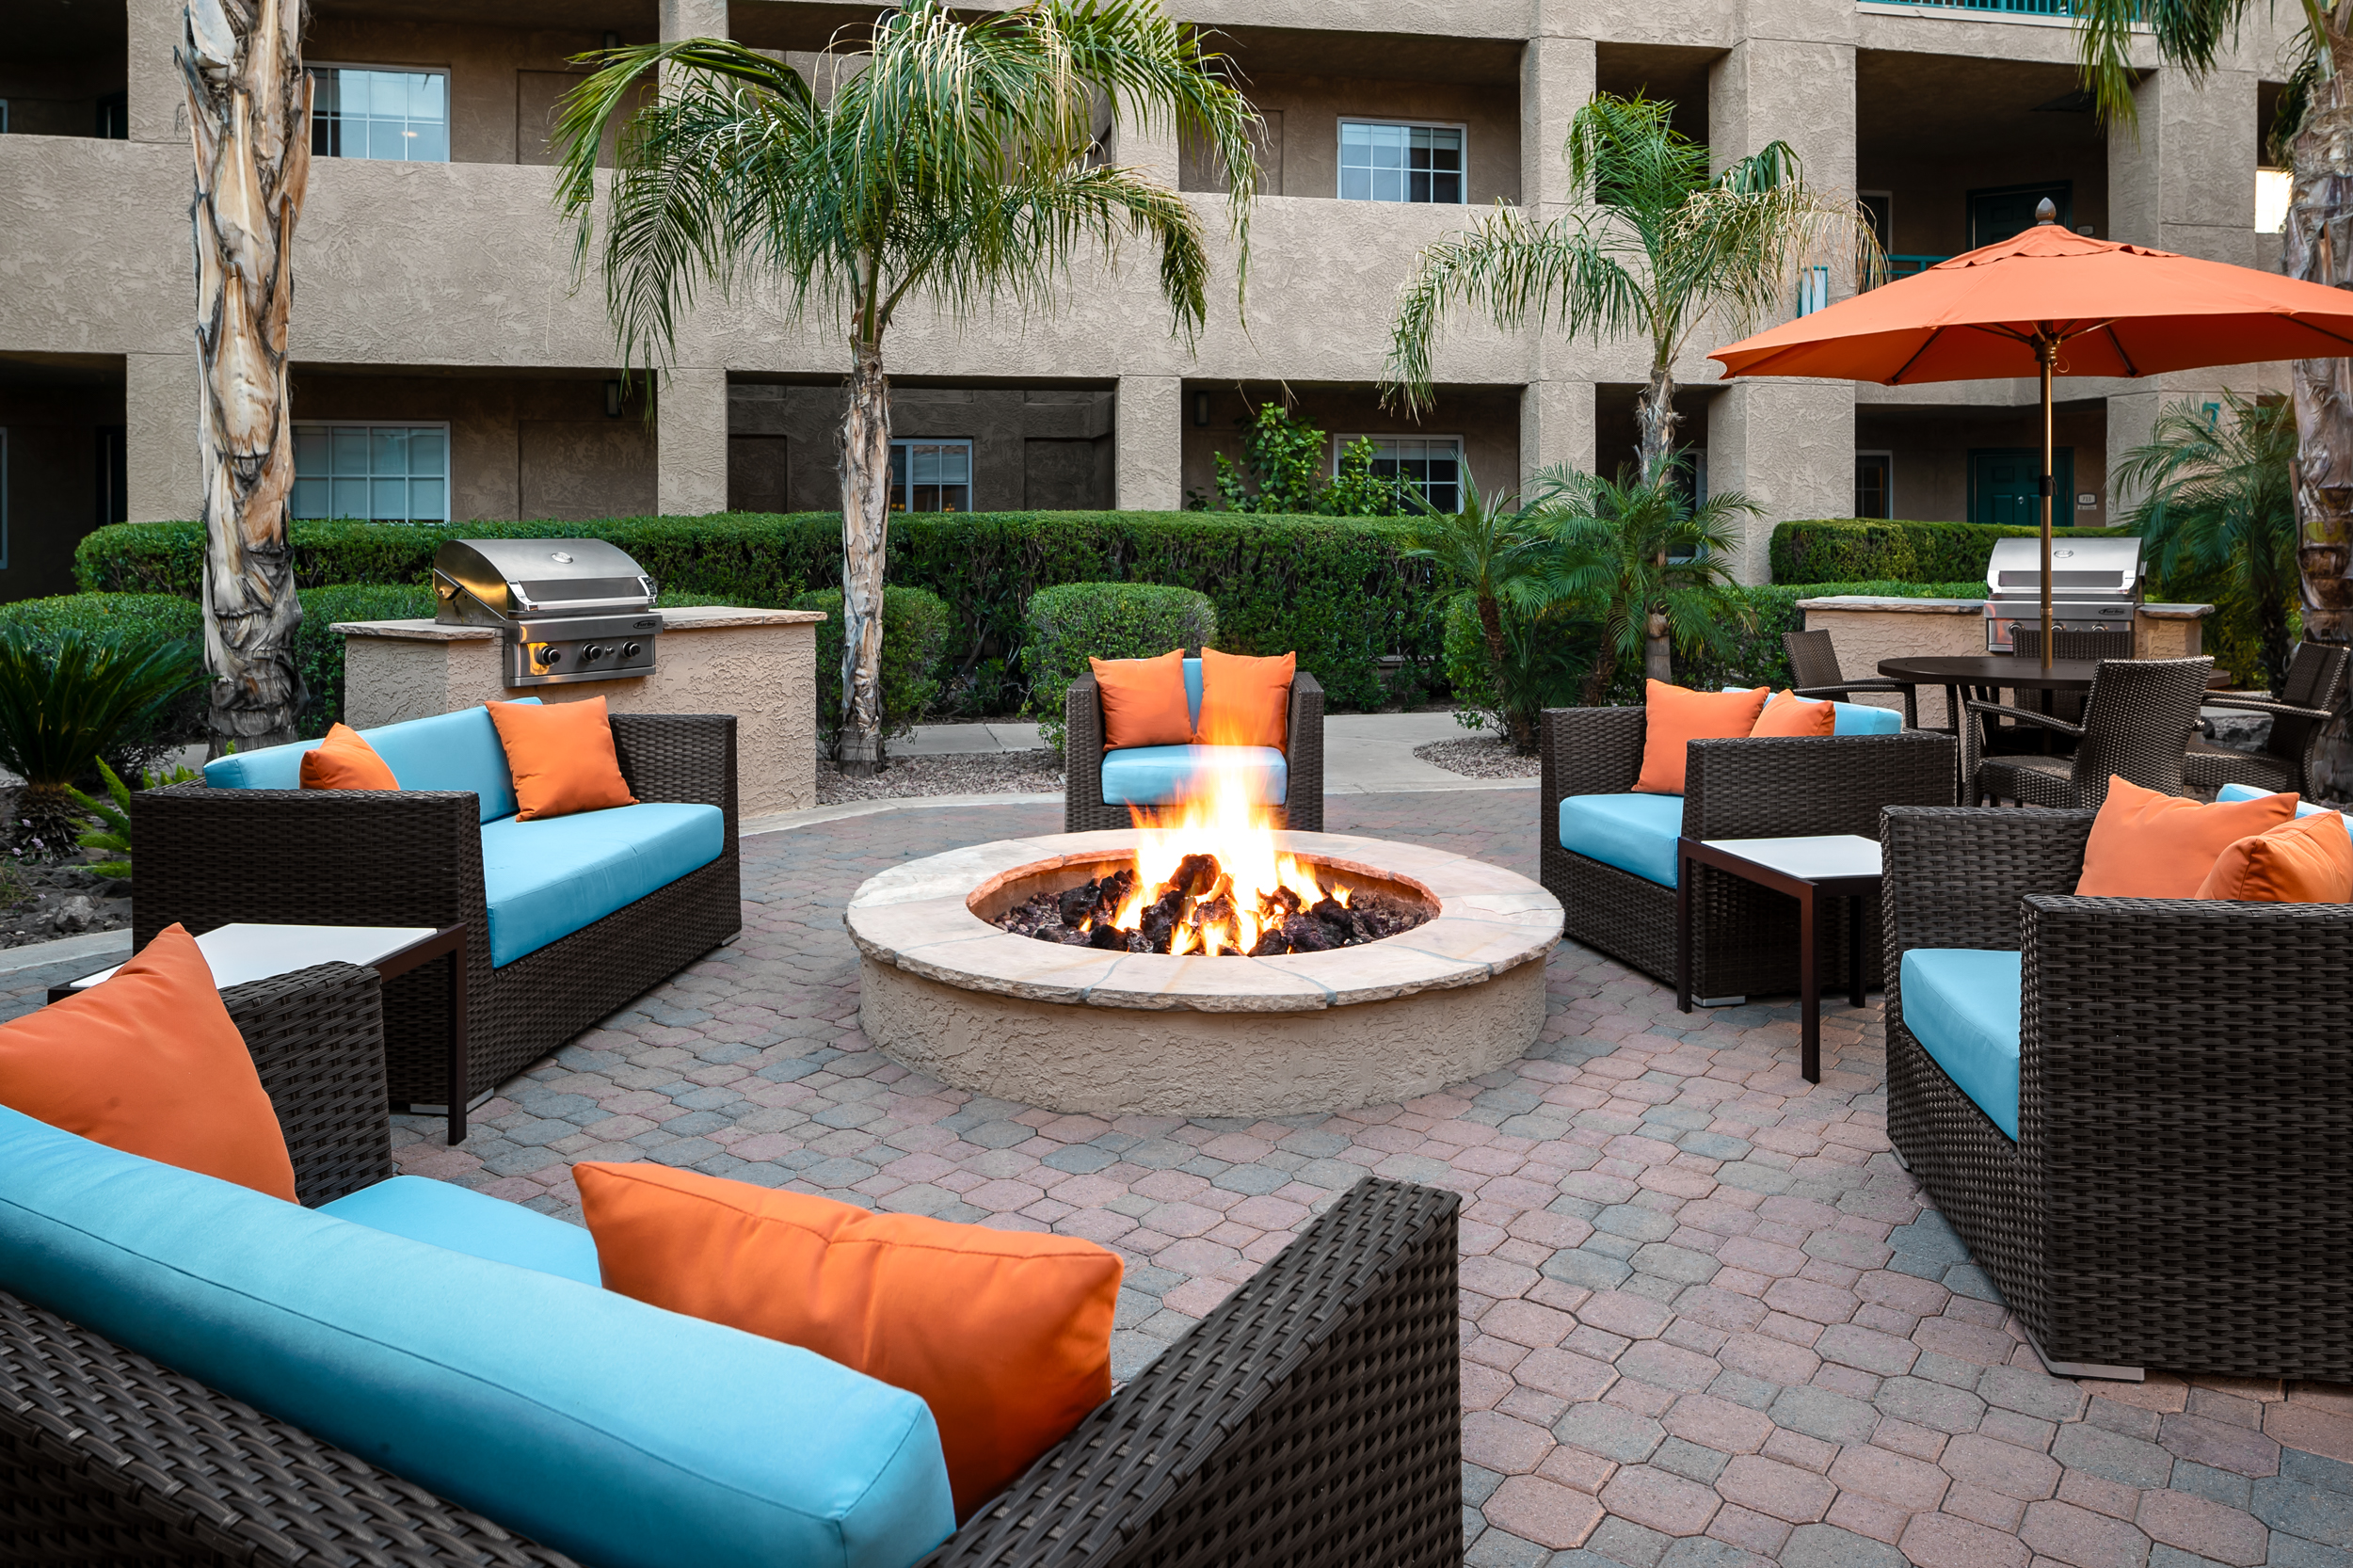 Fire Pit Lounge Final REVISED.jpg